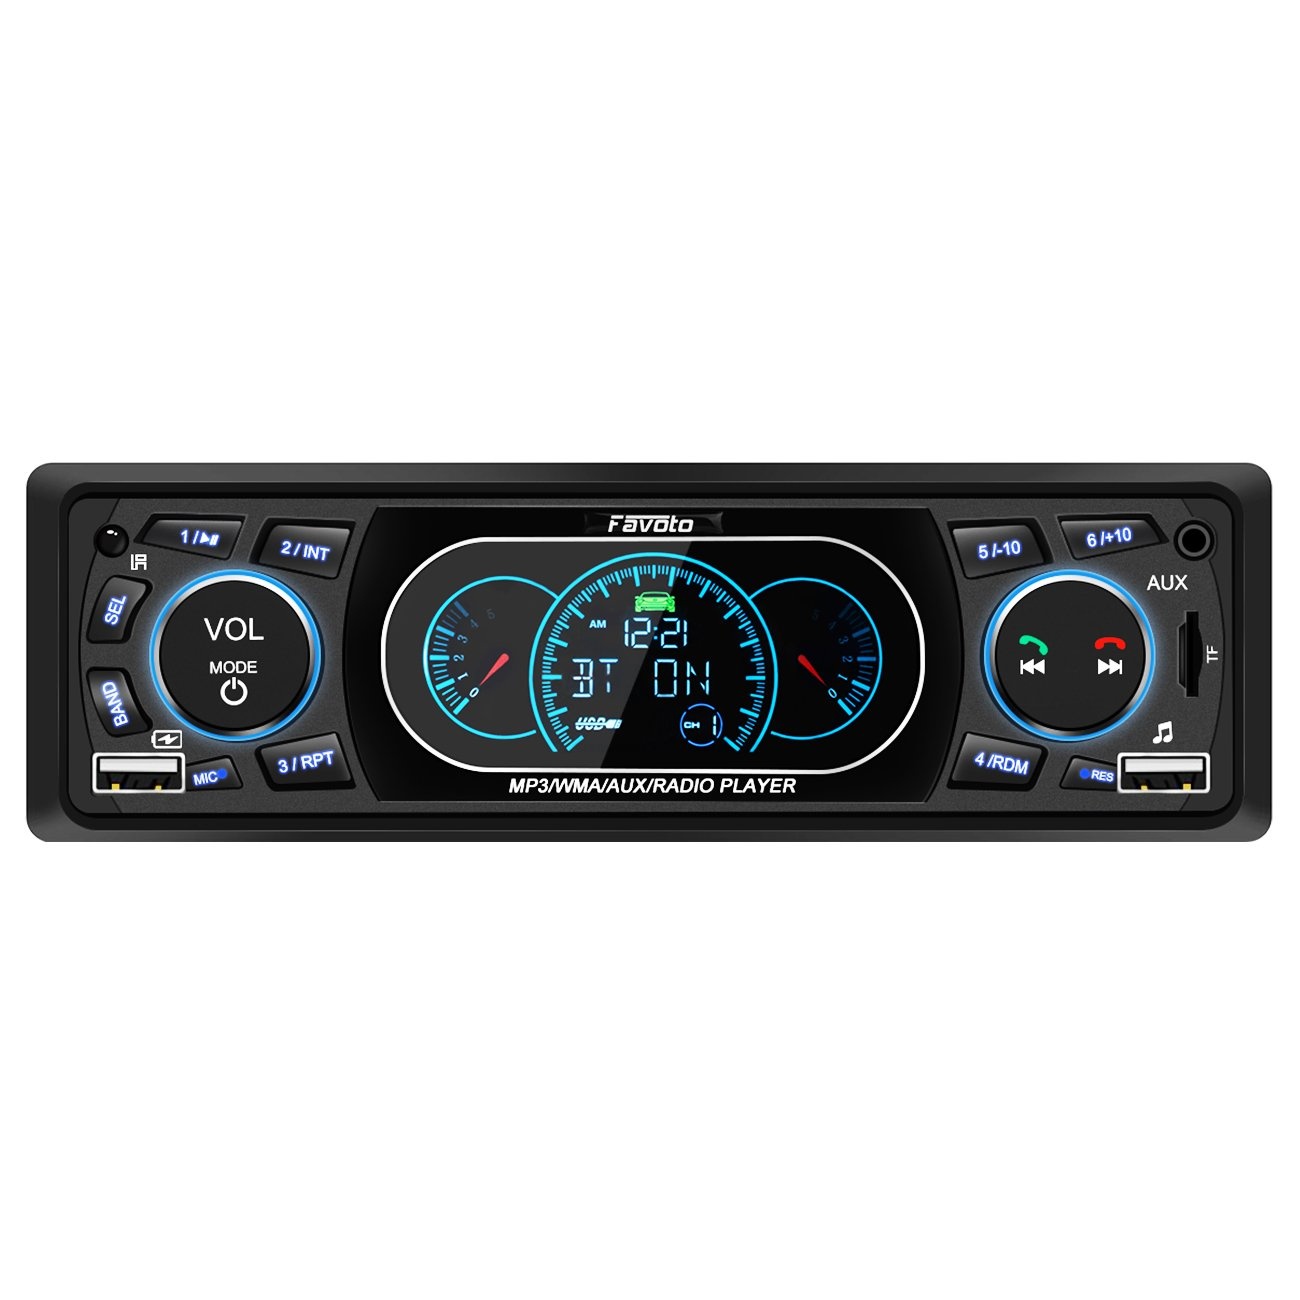 Favoto Car Stereo Receiver Blueooth in-Dash Head Unit Single Din Car Radio MP3 Player Digital Media Receivers Handsfree Call USB TF FM AUX DC 12V Wireless Remote